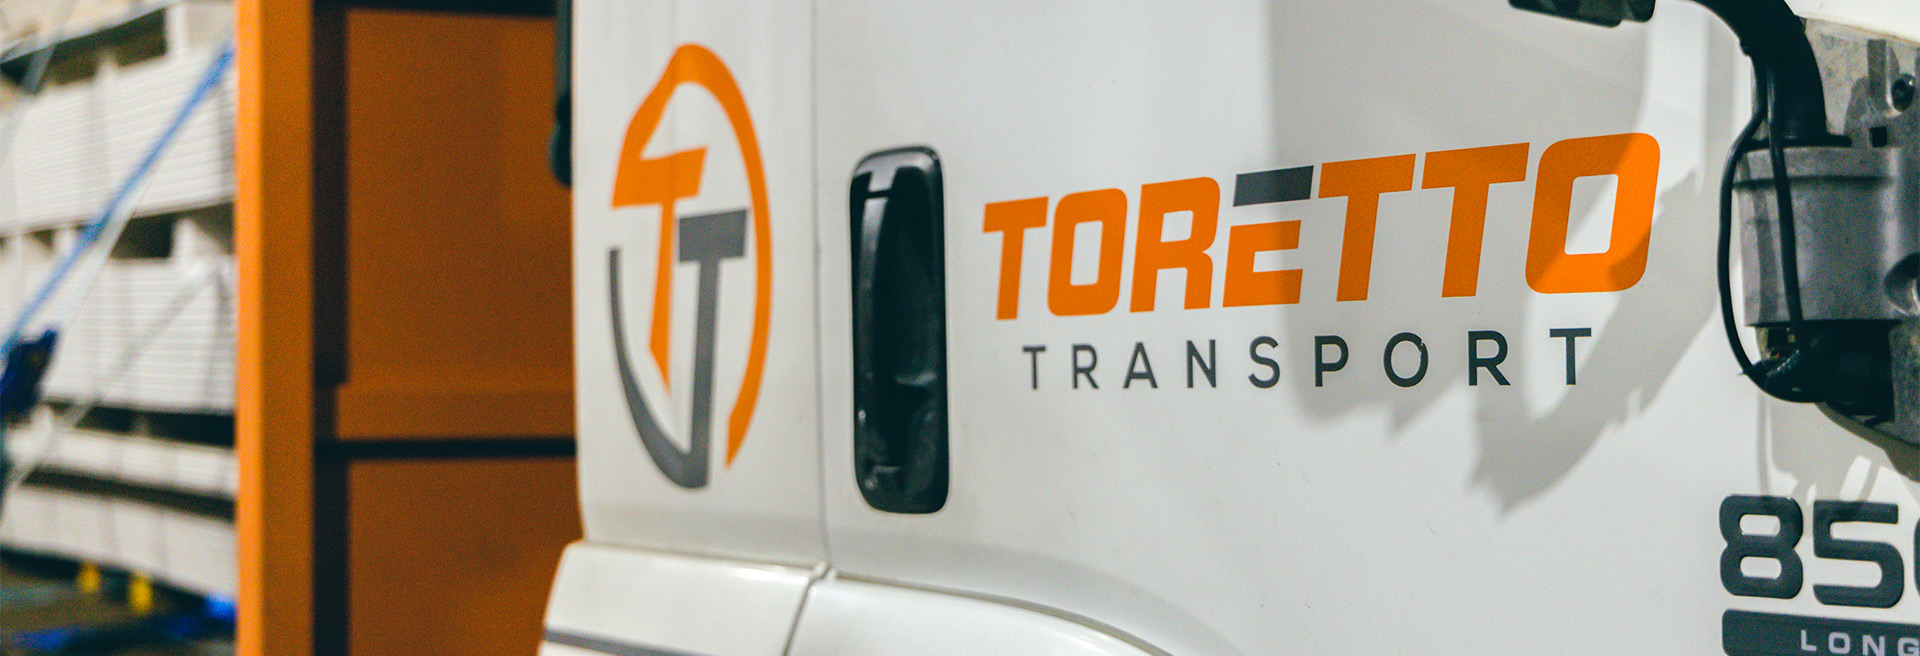 Close up of Toretto Transport logo on side of truck door.